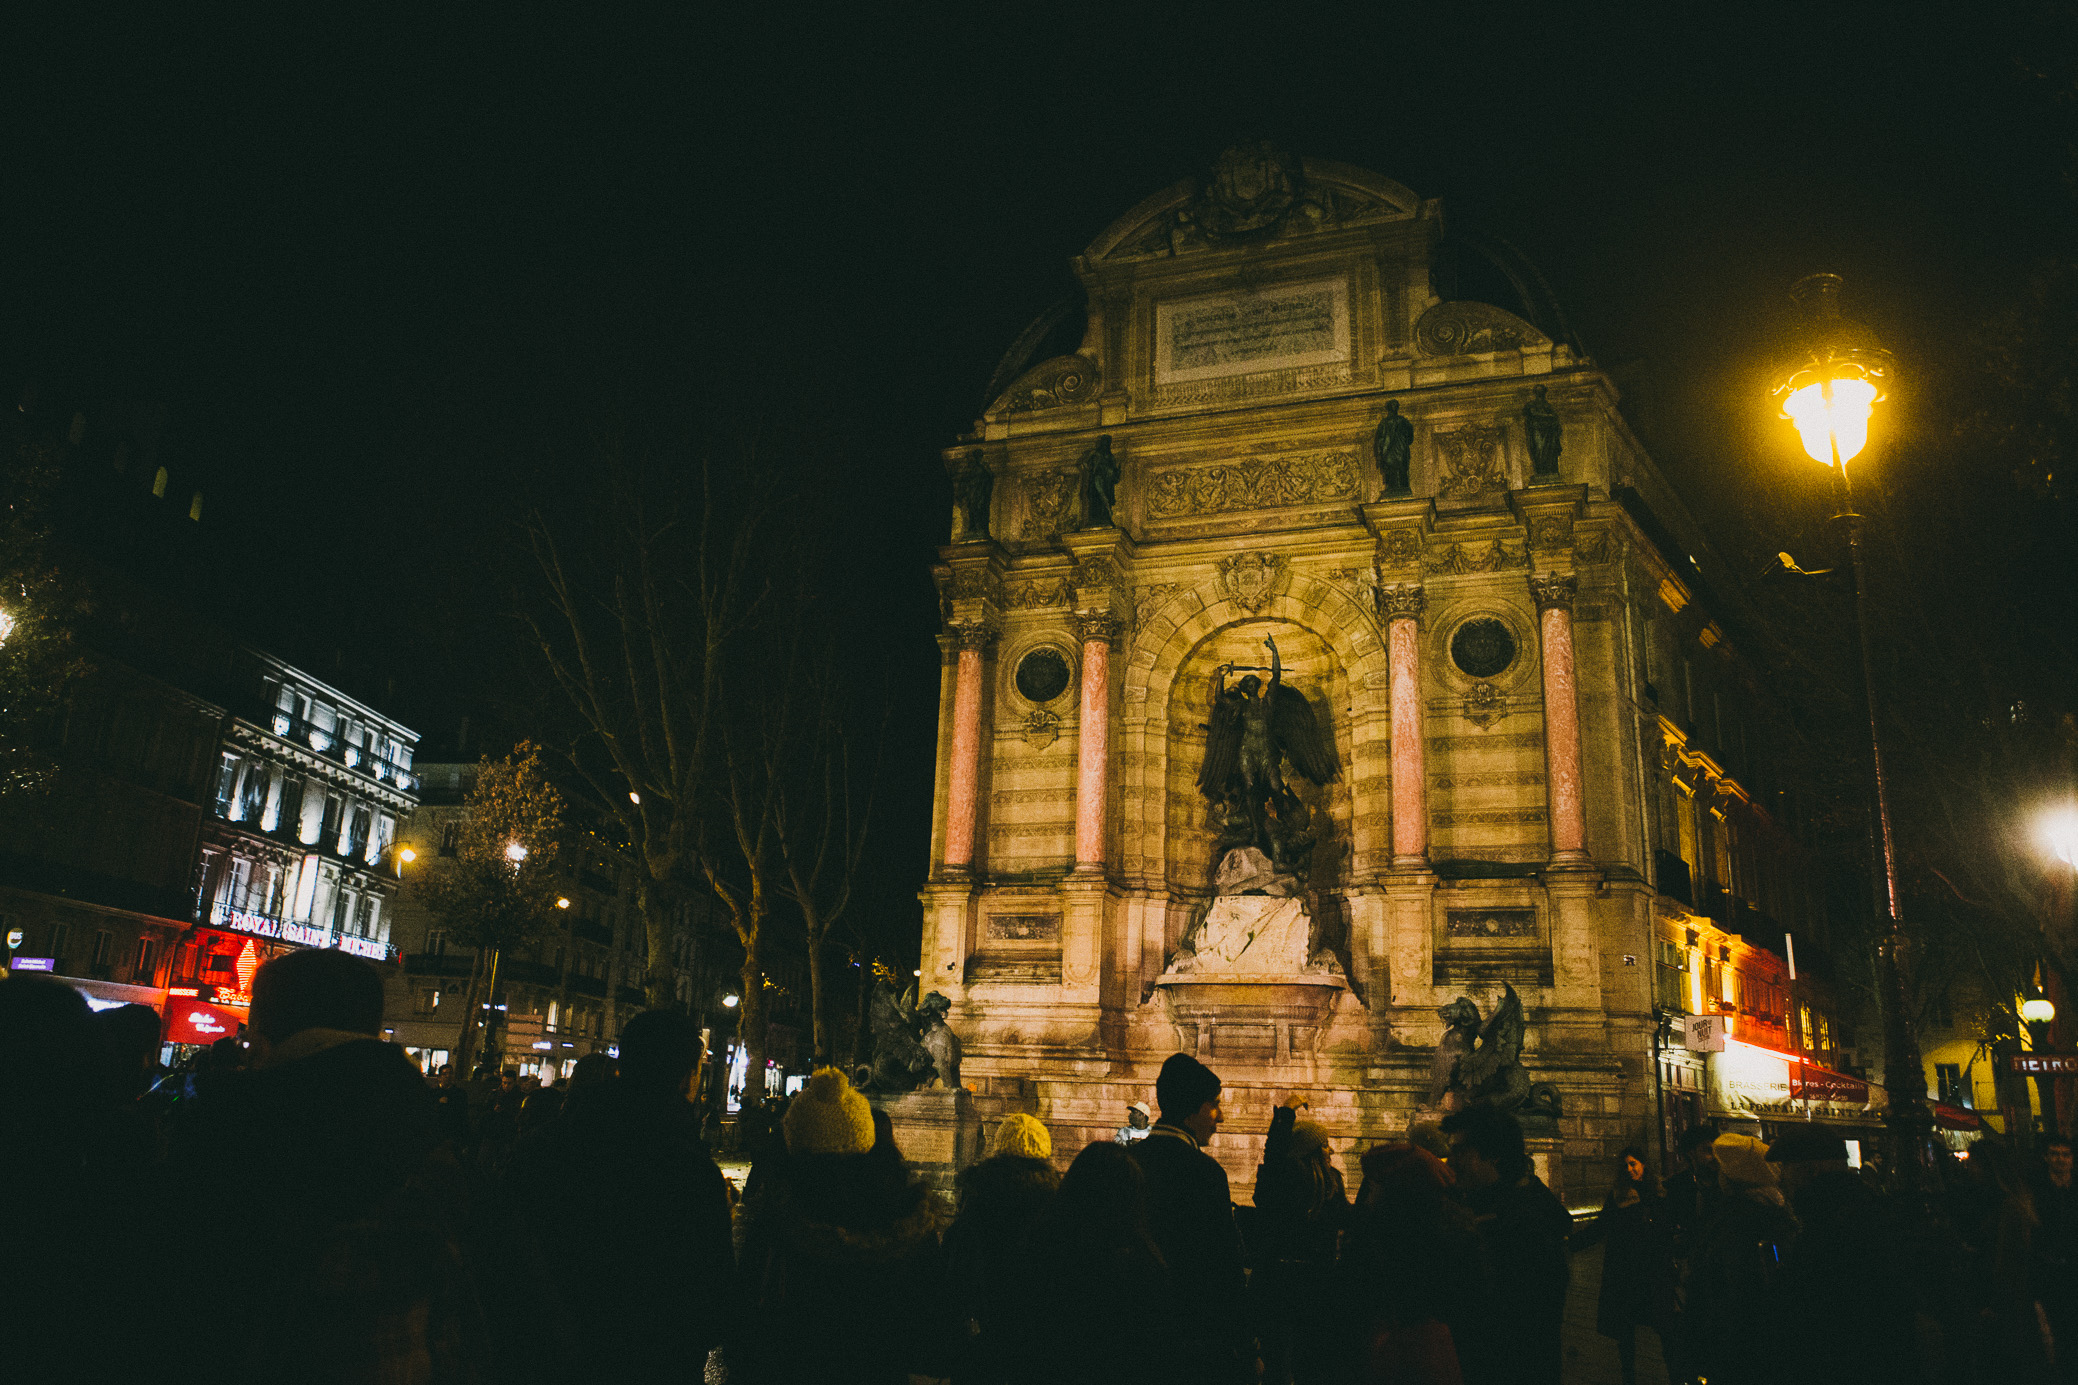 Fontaine Saint-Michael | Paris, France | December 8th, 2018 | (Photo by David A. Smith / DSmithScenes)